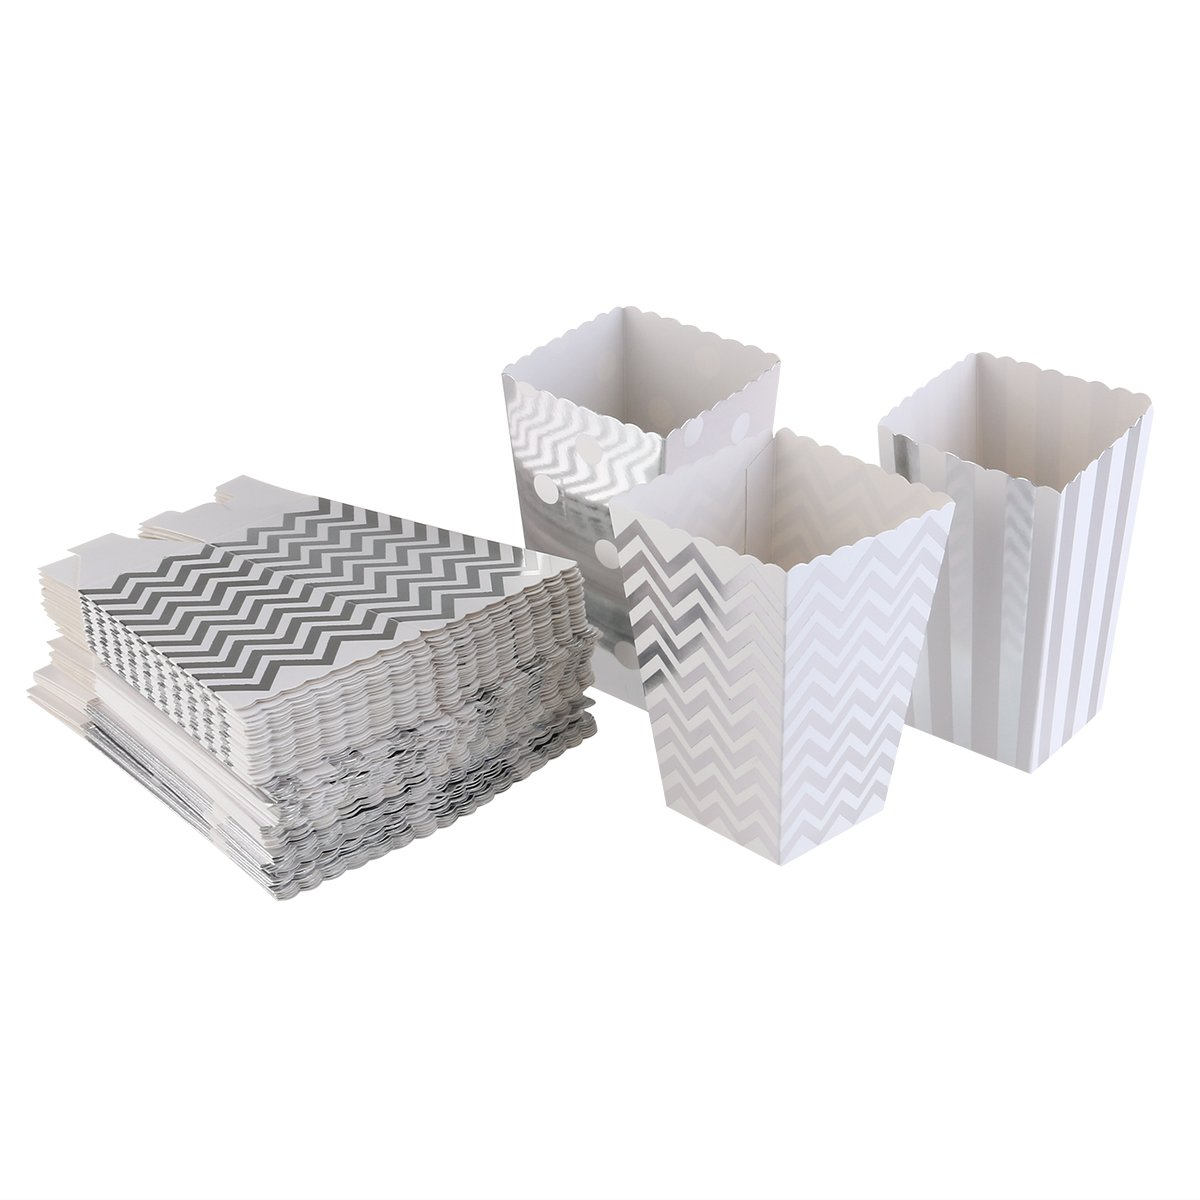 PIXNOR Popcorn Boxes Popcorn Container Party Candy Bag Treat Boxes Silver 50 Pieces